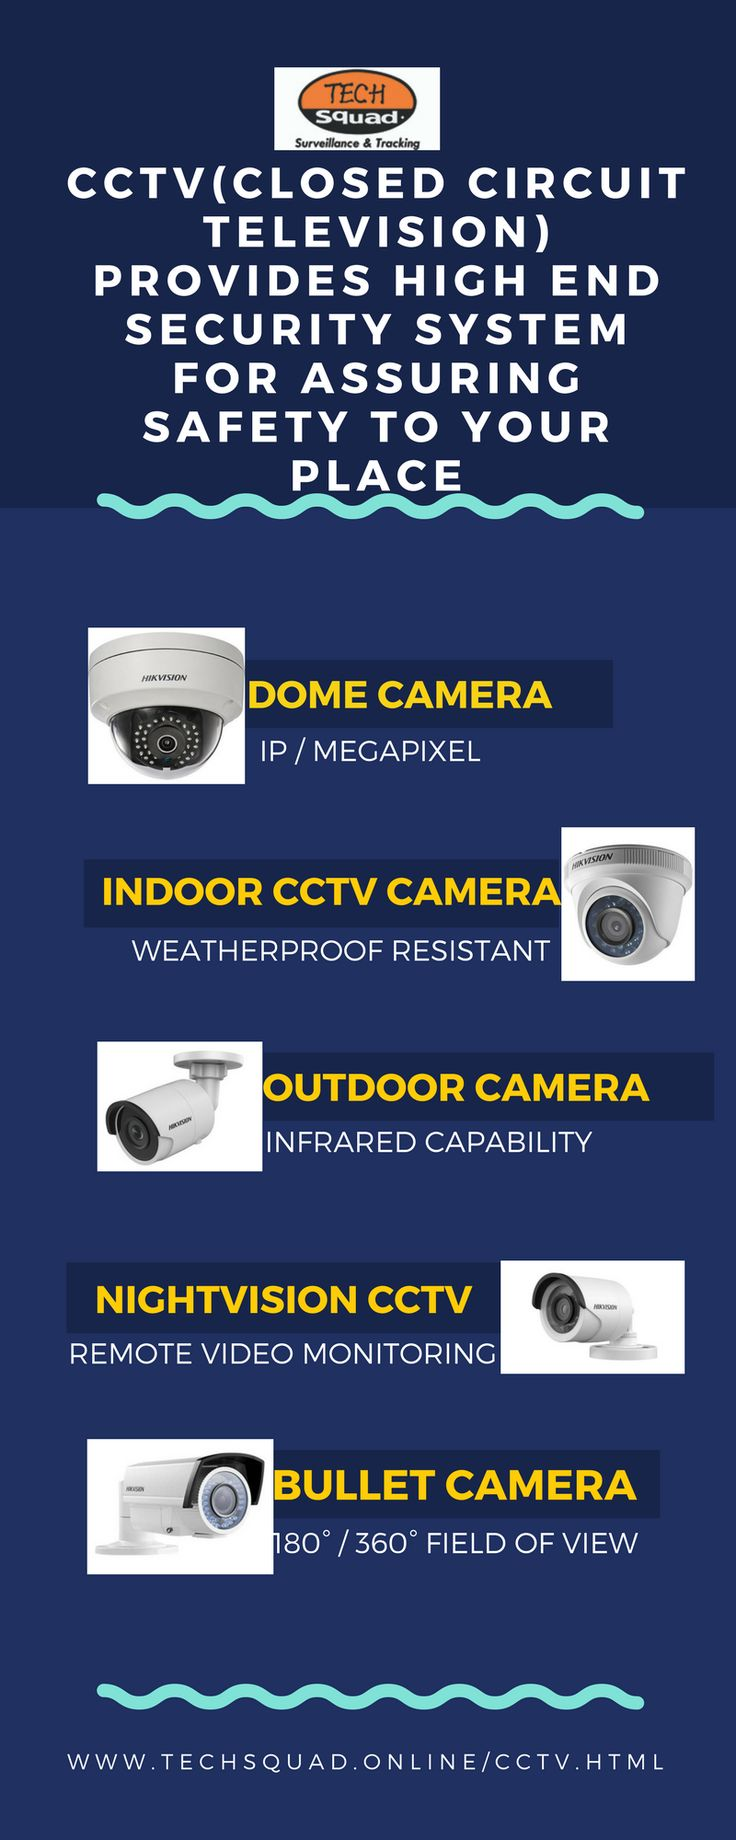 Techsquad delivers the advanced level of security CCTV Camera for homes, schools, offices and industries. It consists of high-resolution cameras with Noise reduction technology for better surveillance. If you need to buy a CCTV surveillance camera, visit our site-http://www.techsquad.online/cctv.html Phone:+91 (422) 2561010 Address:43B, V N Industrial Area, West Bharathi Colony, Peelamedu, Coimbatore – 641004, Tamil Nadu, India. Email:info@ameritore.com